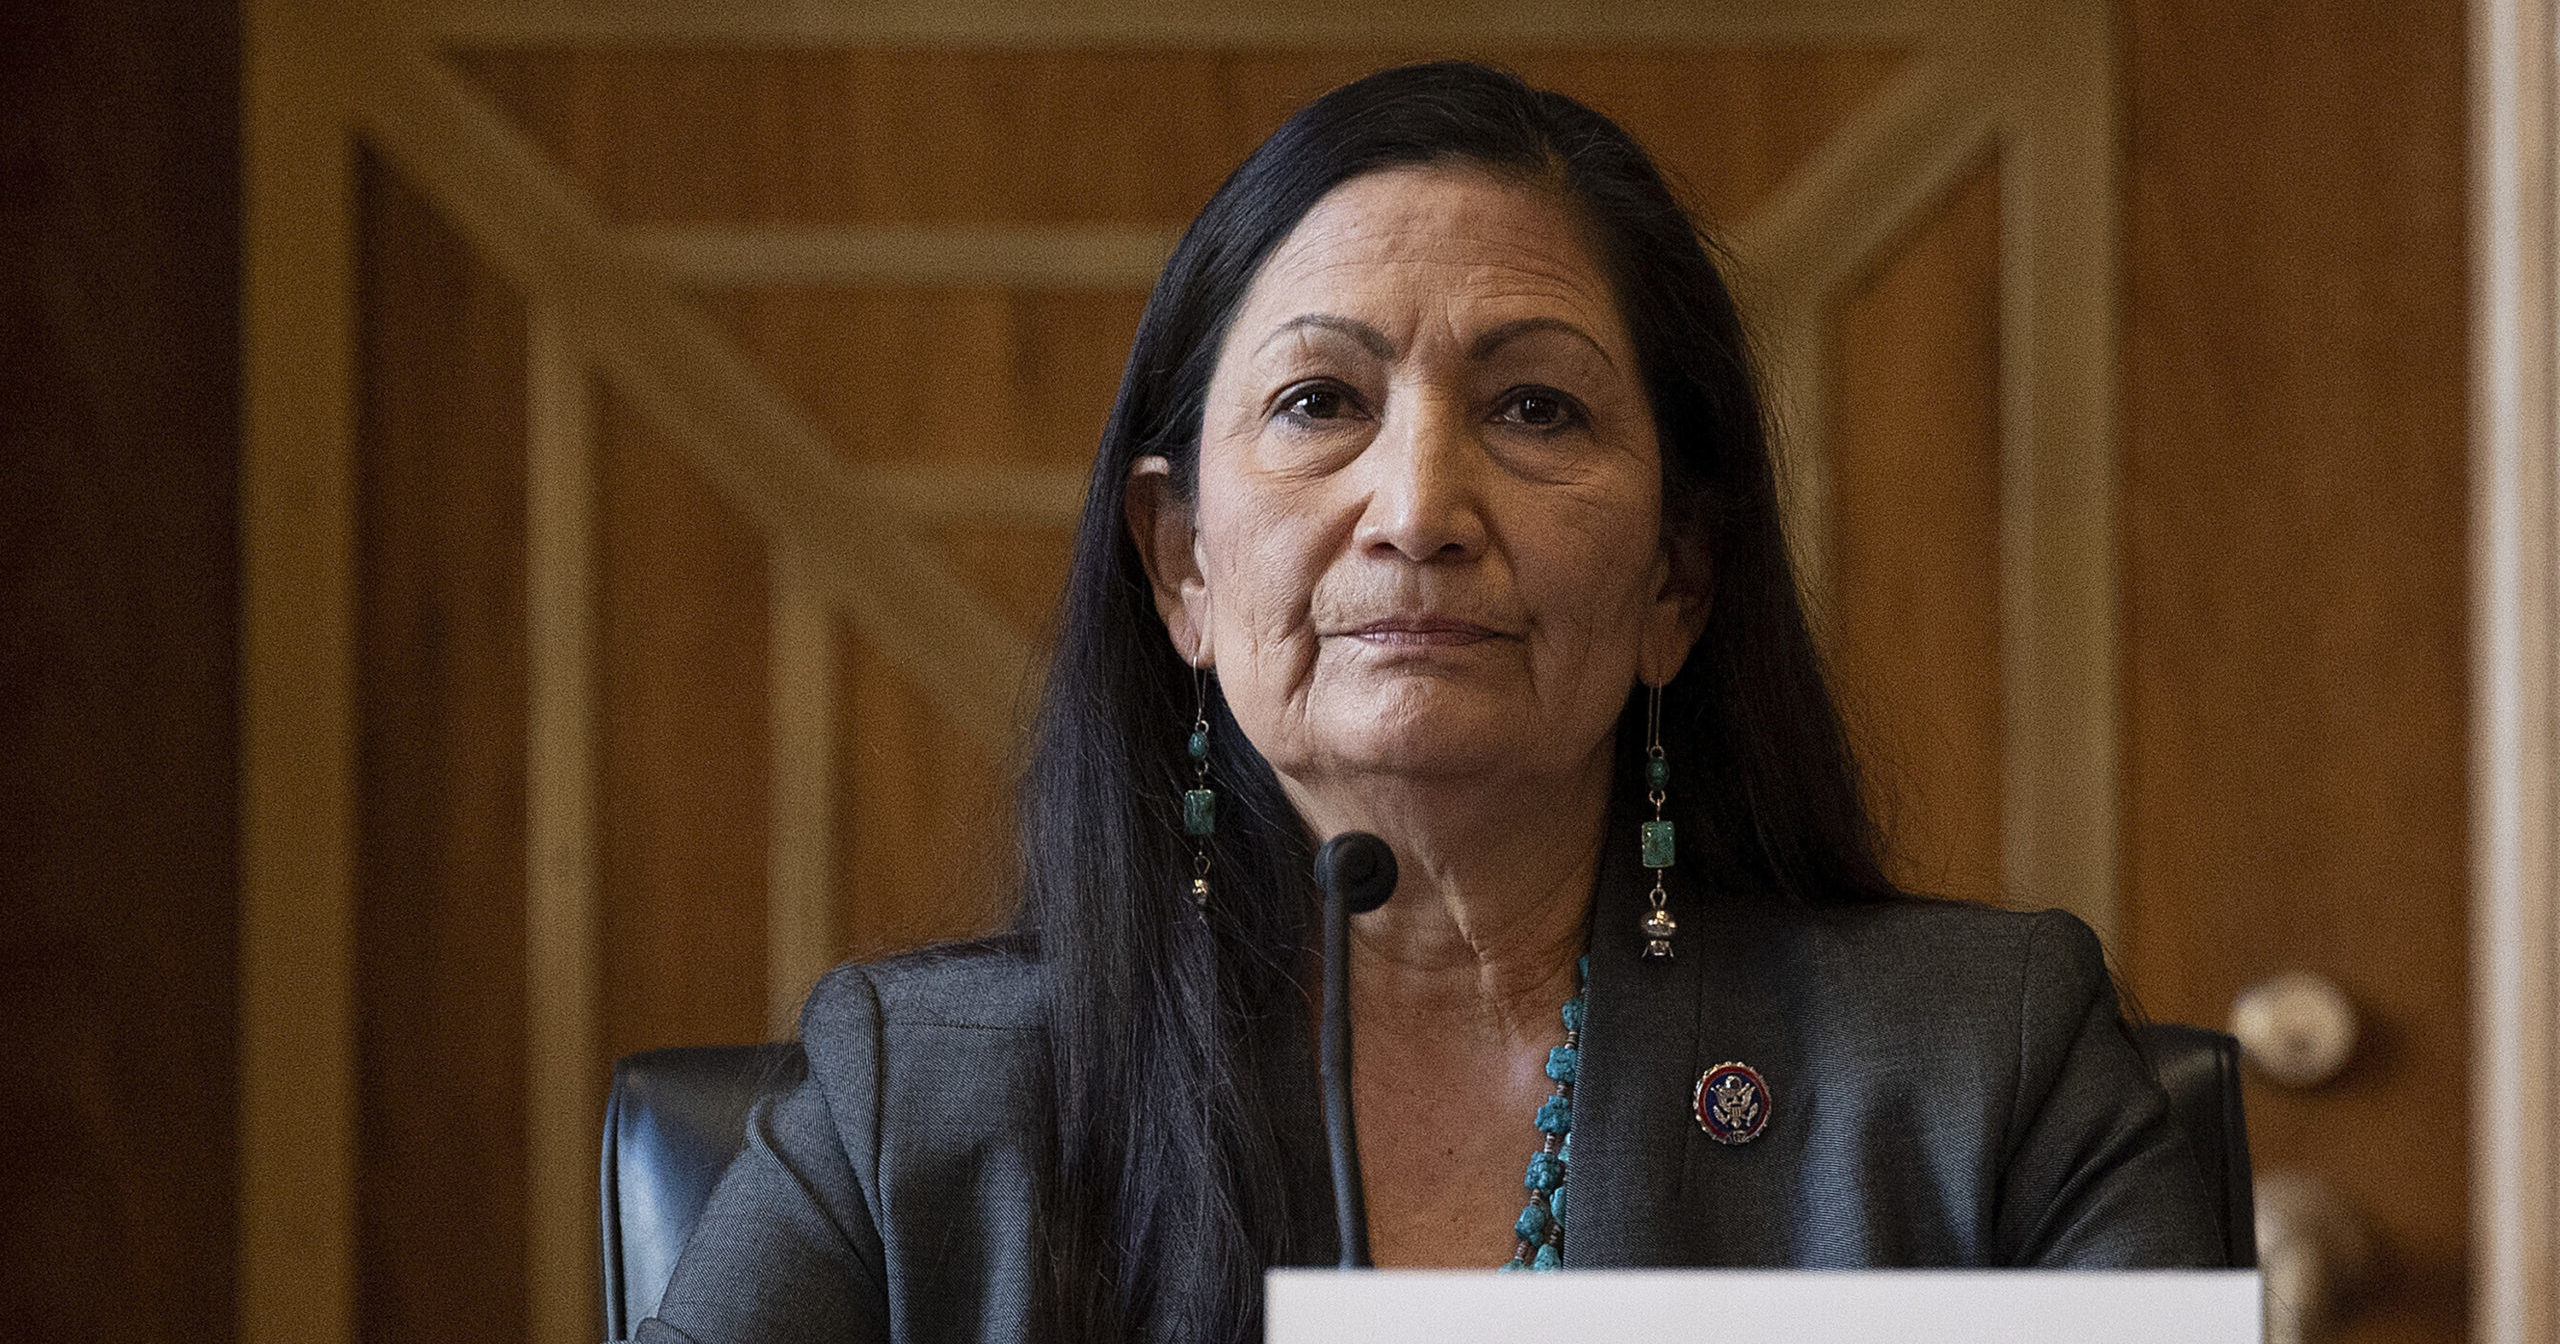 Rep. Deb Haaland listens during a Senate Committee on Energy and Natural Resources hearing on her nomination as interior secretary on Capitol Hill in Washington, D.C., on Feb. 23, 2021.